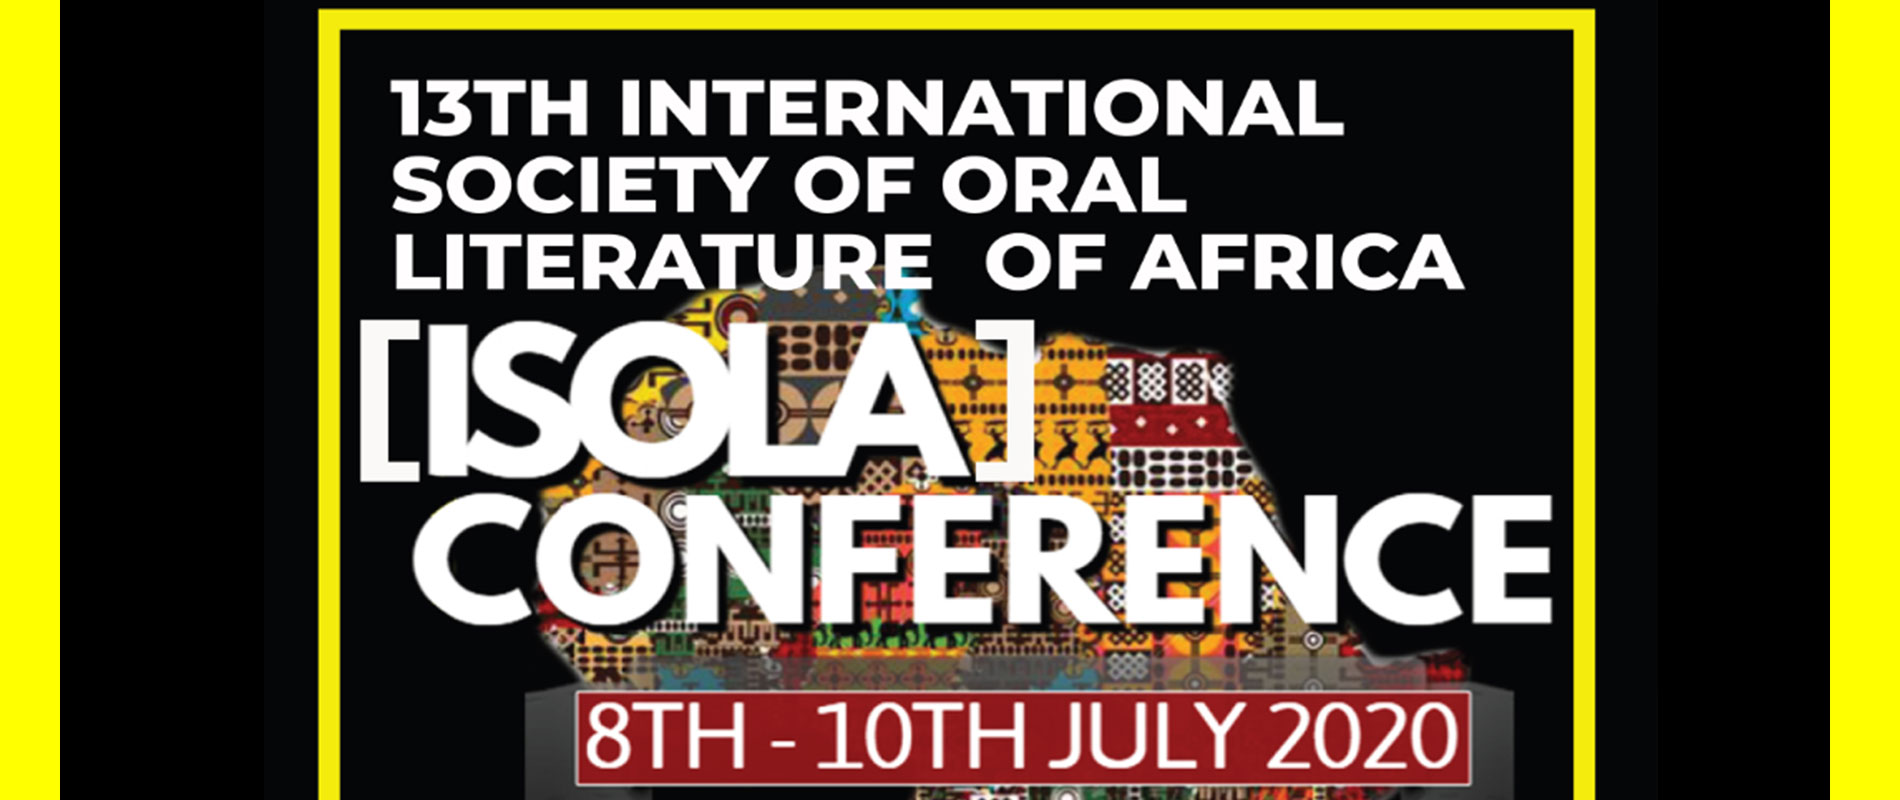 isola conference banner